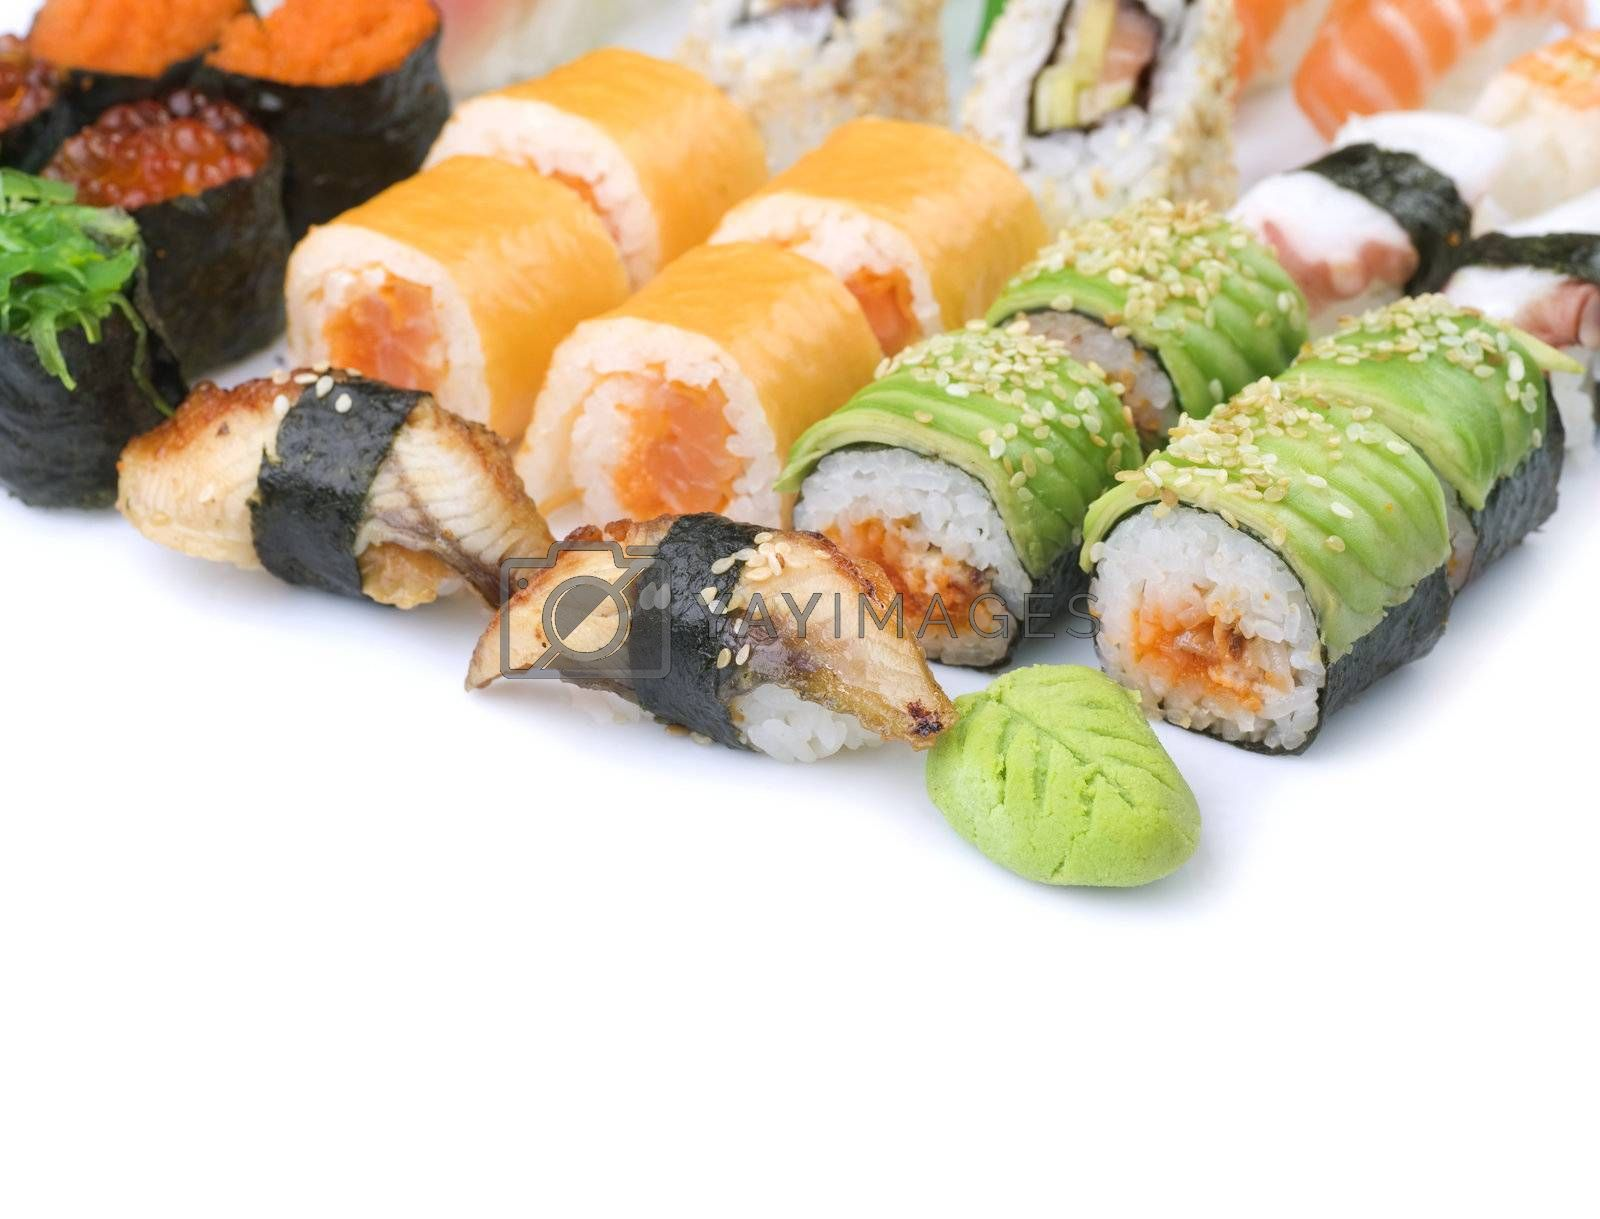 Different Sushi And Rolls Border by Subbotina Anna